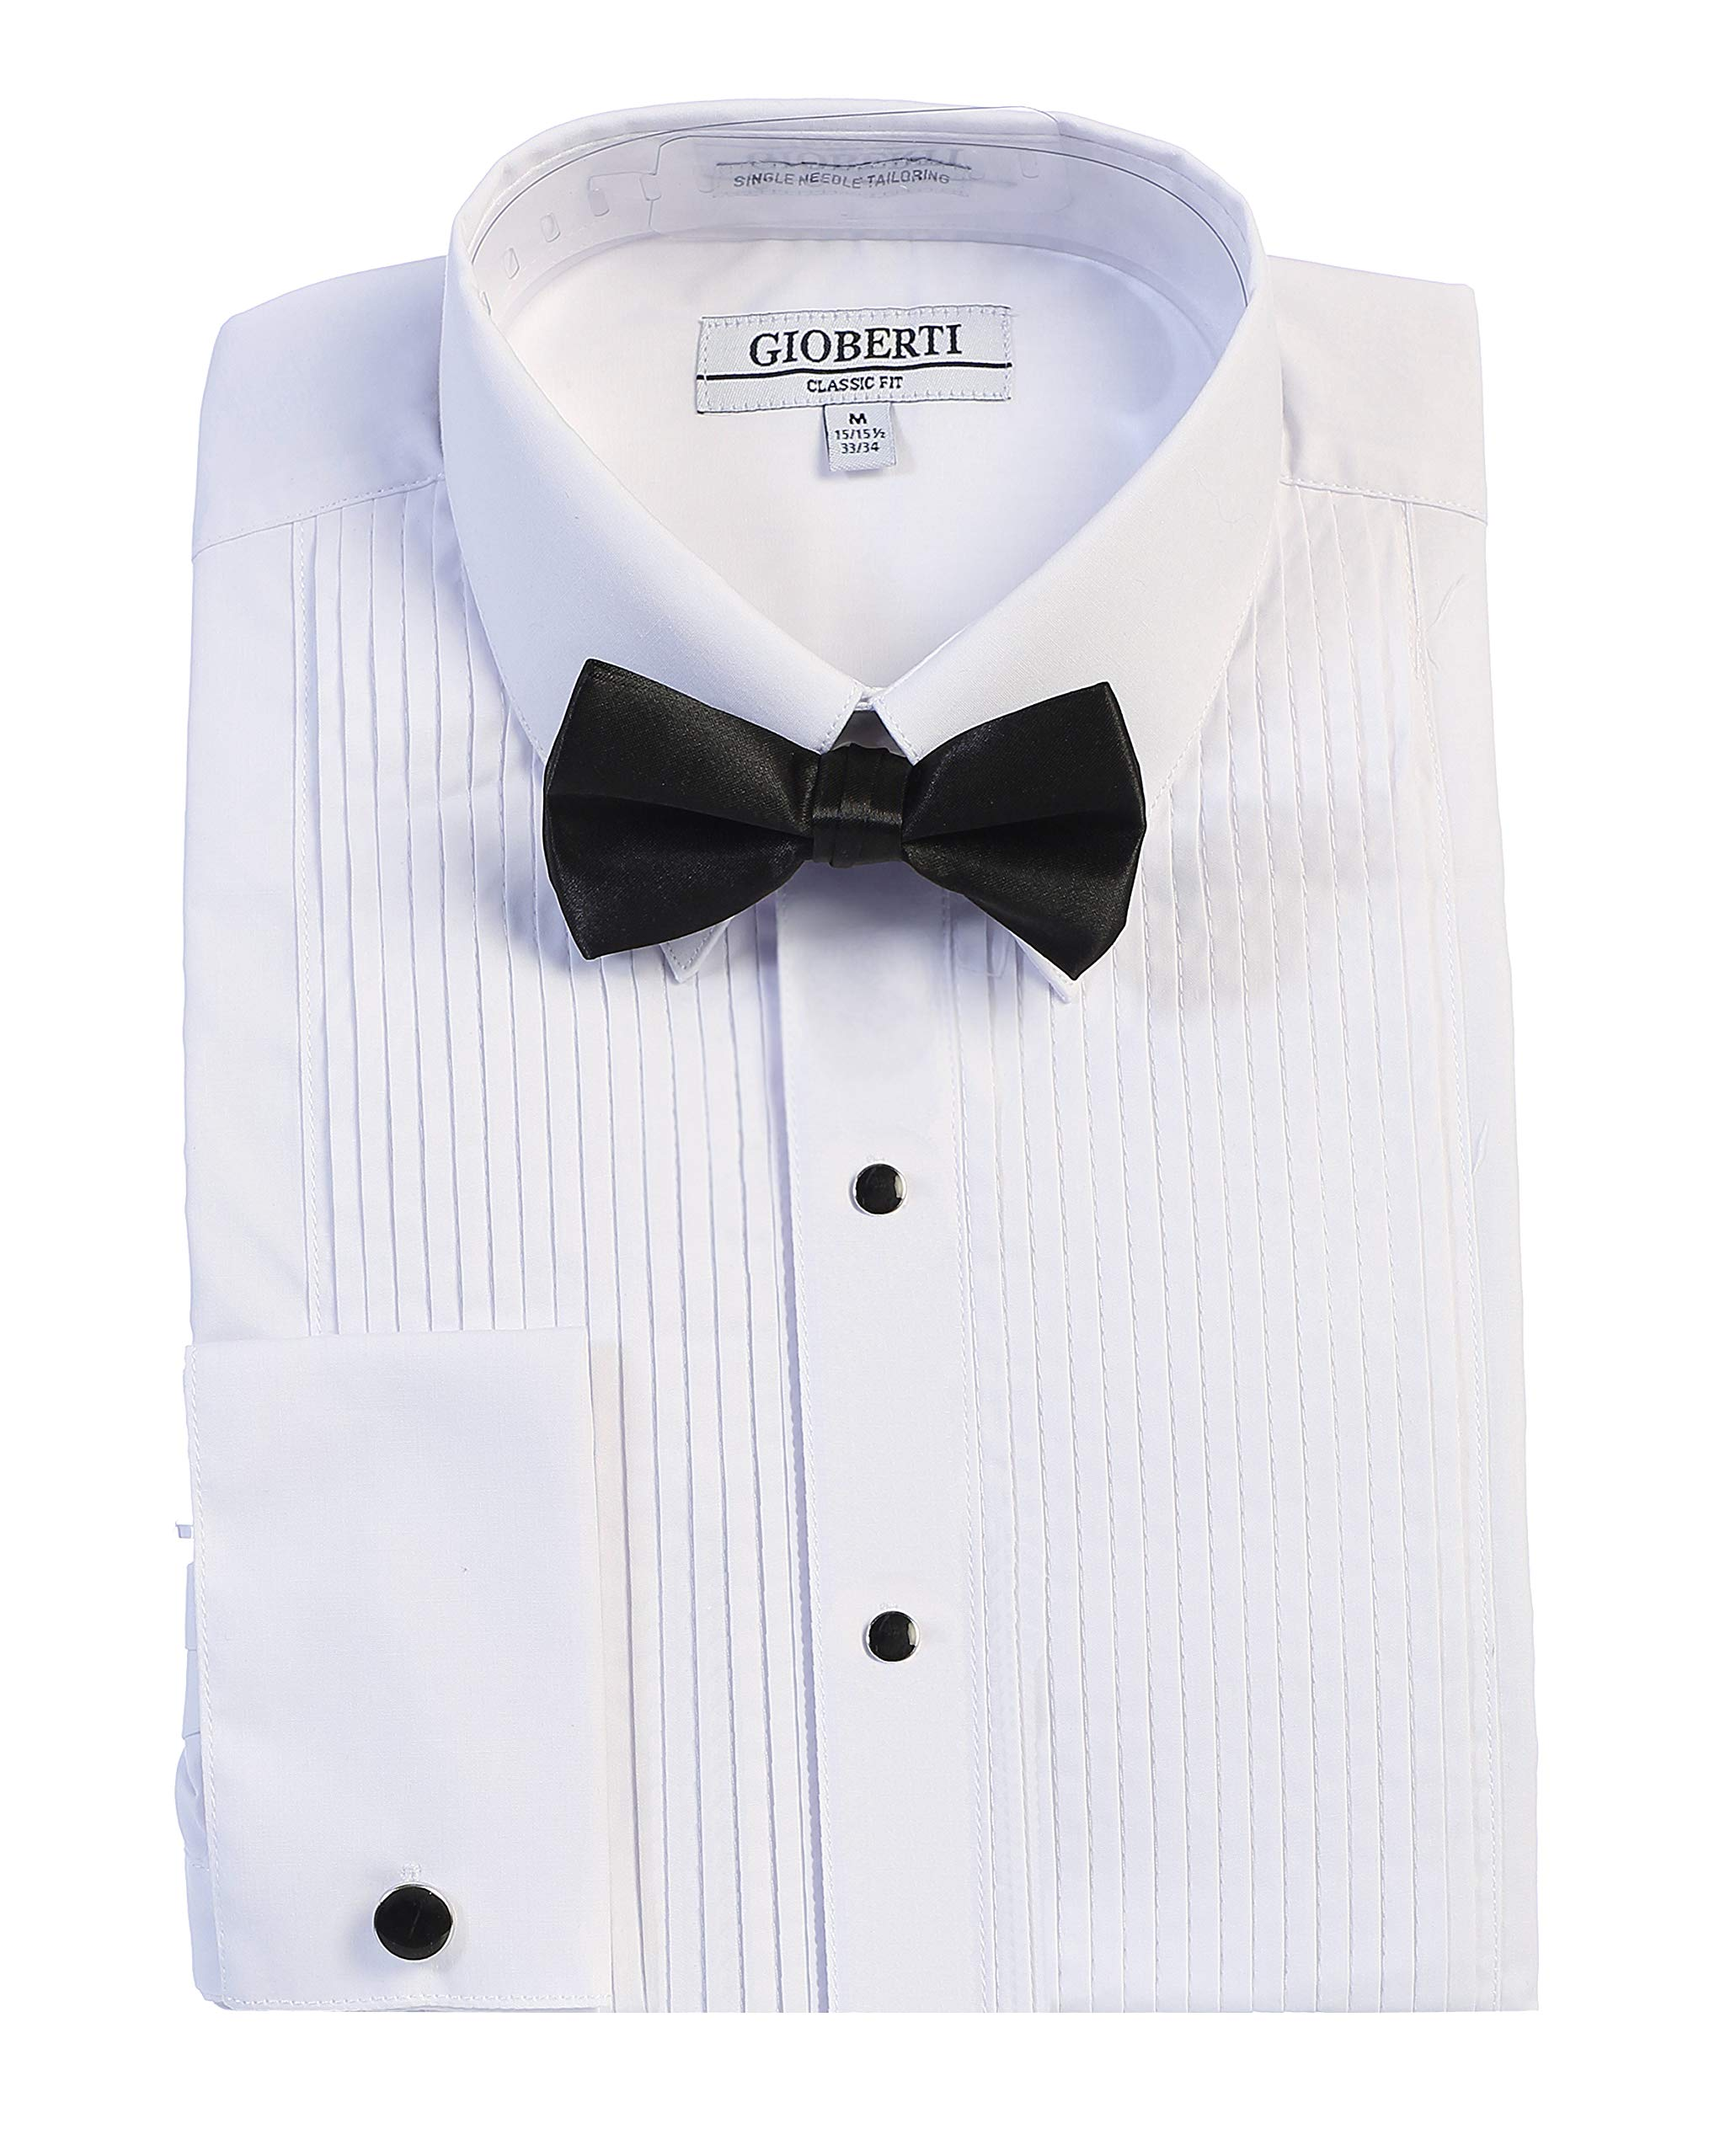 Gioberti Men's Kent Lay Down Collar Tuxedo Dress Shirt with Bow Tie, White, X-Large (36/37) by Gioberti